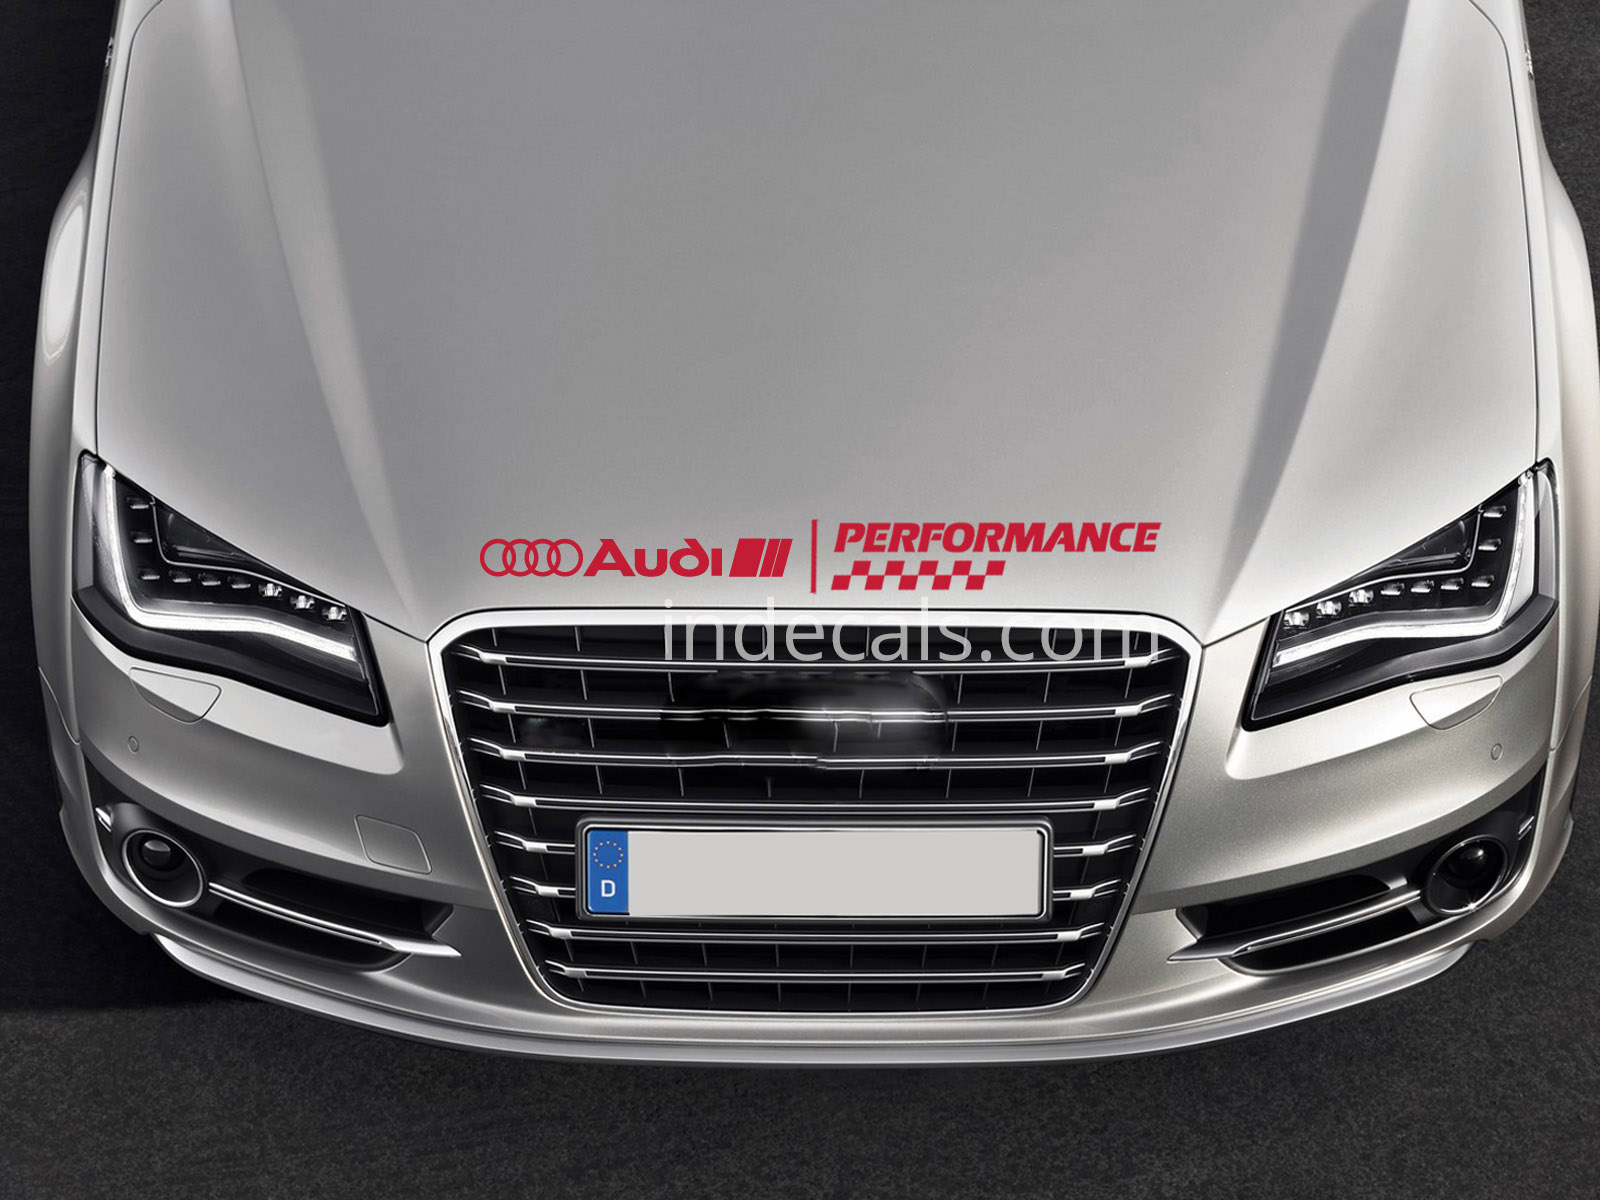 1 x Audi Performance Sticker for Bonnet - Red